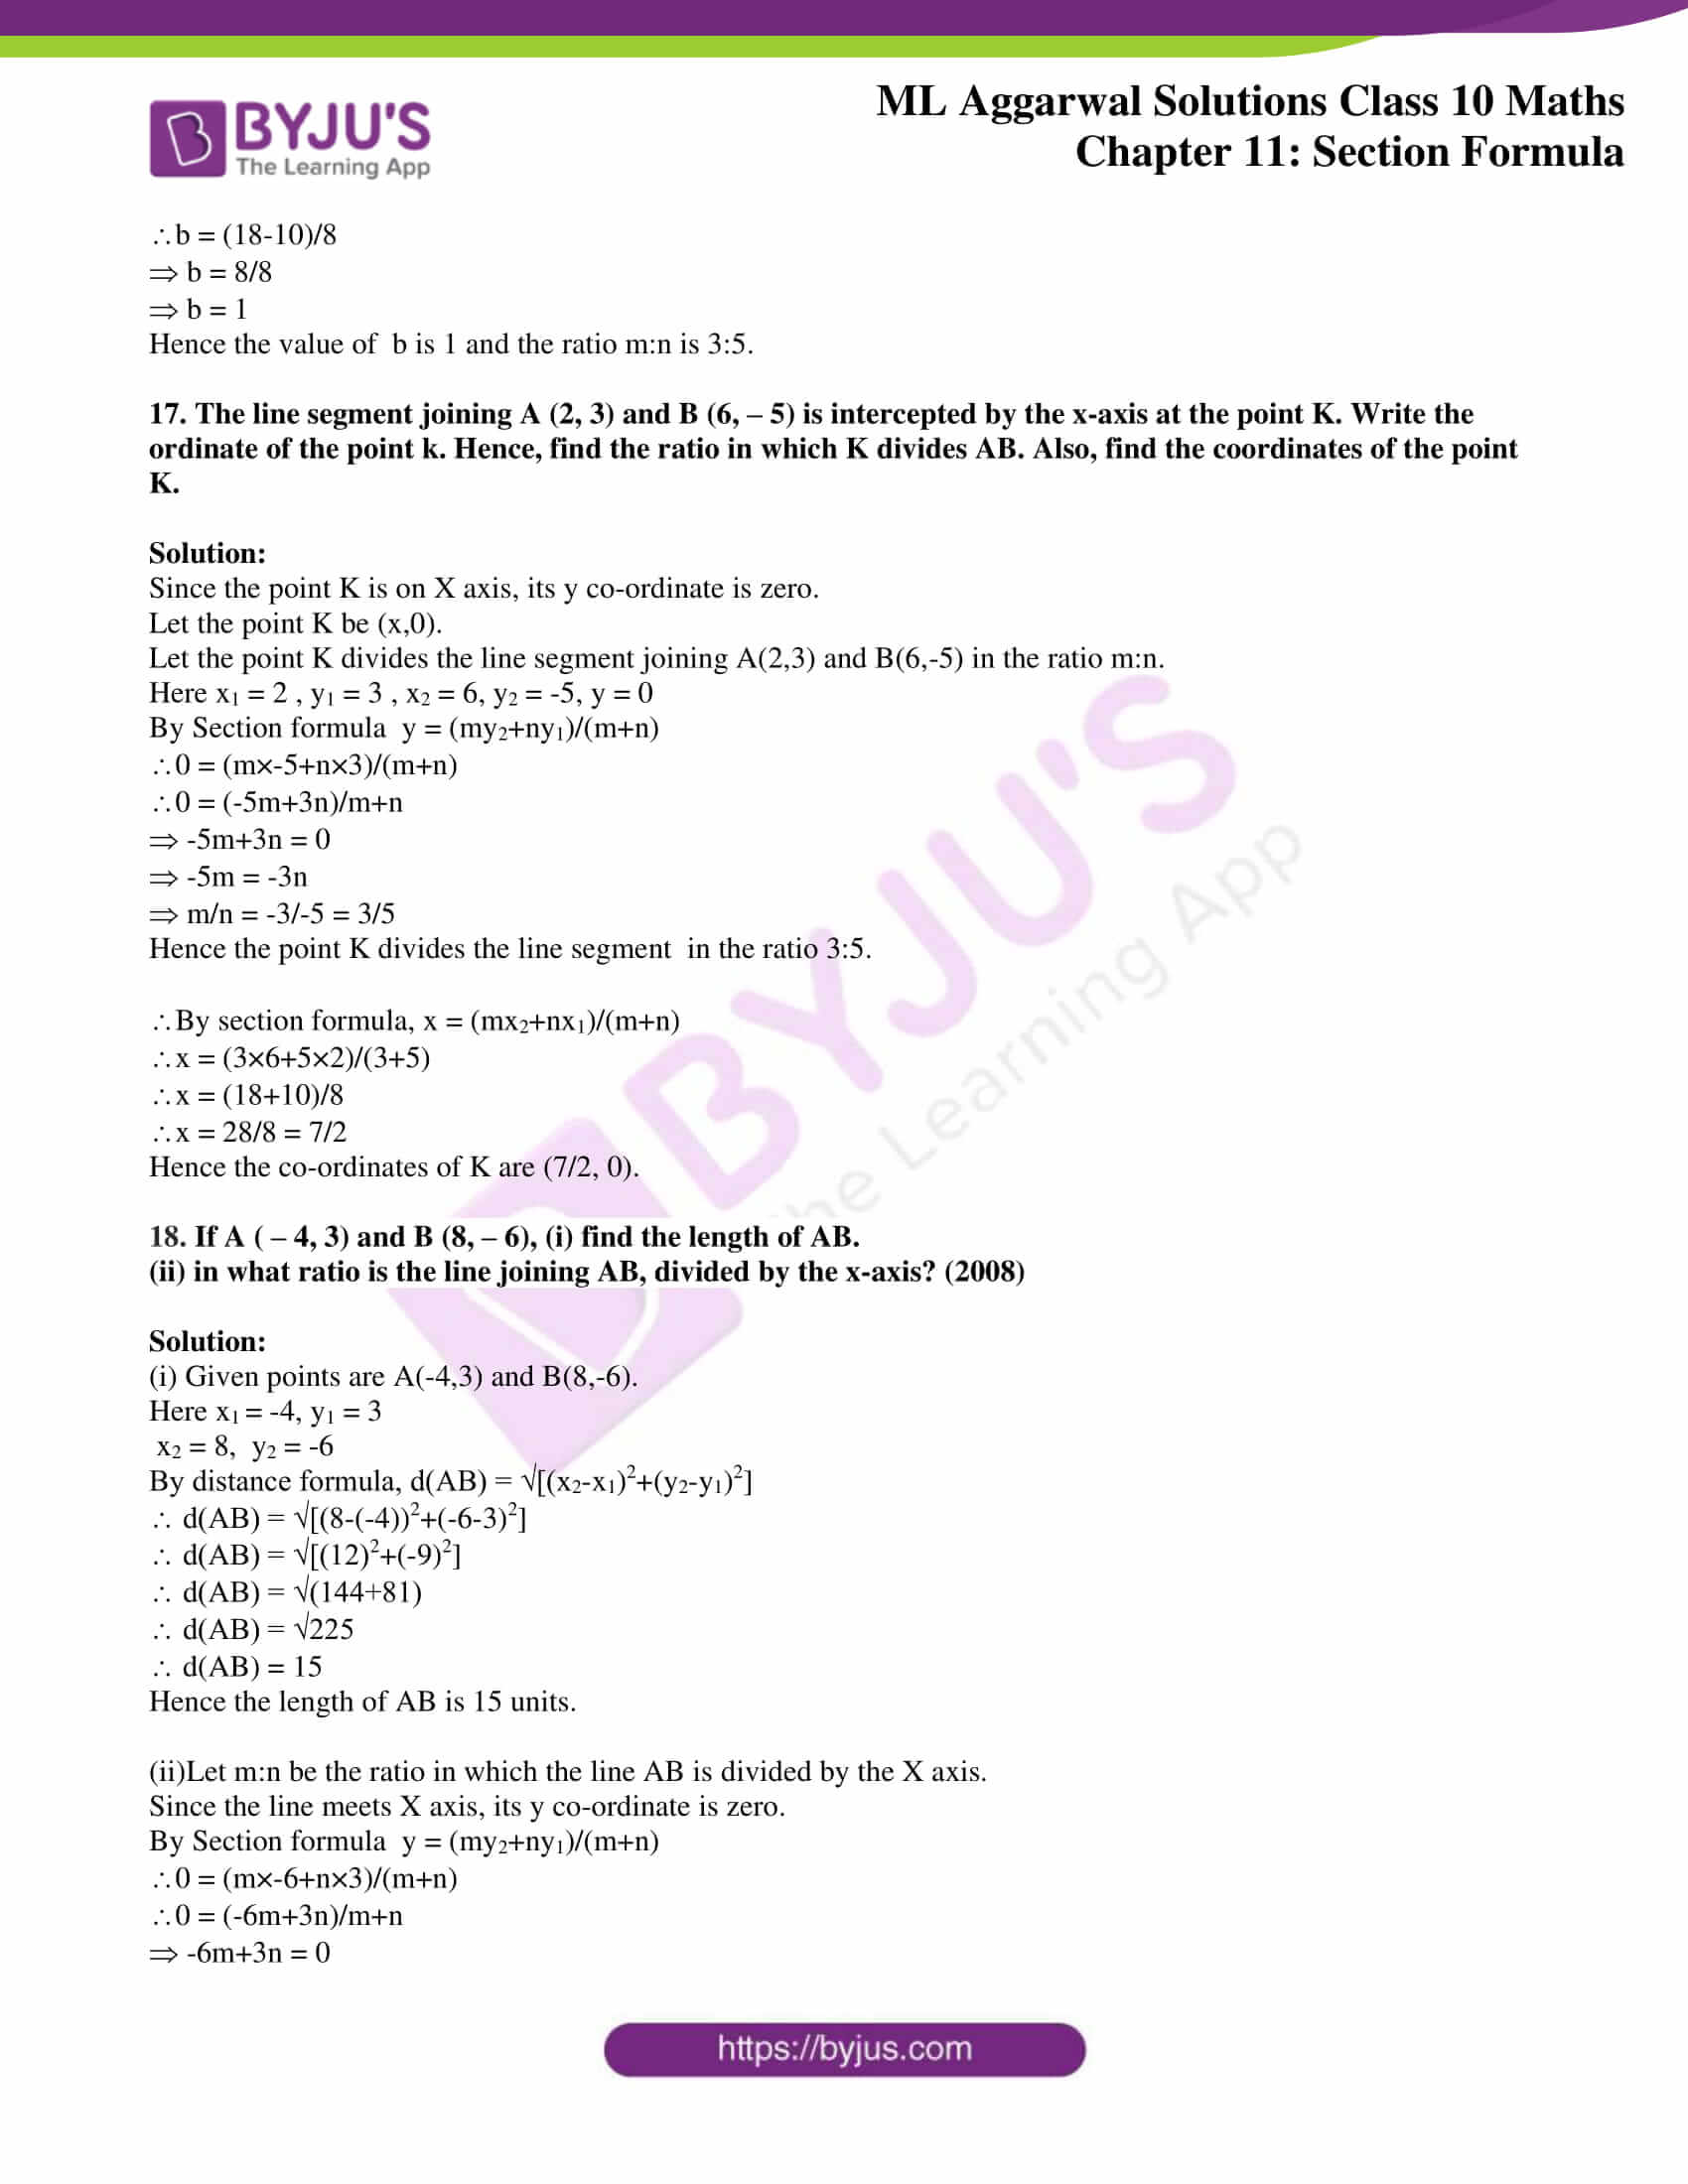 ml aggarwal solutions class 10 maths chapter 11 13